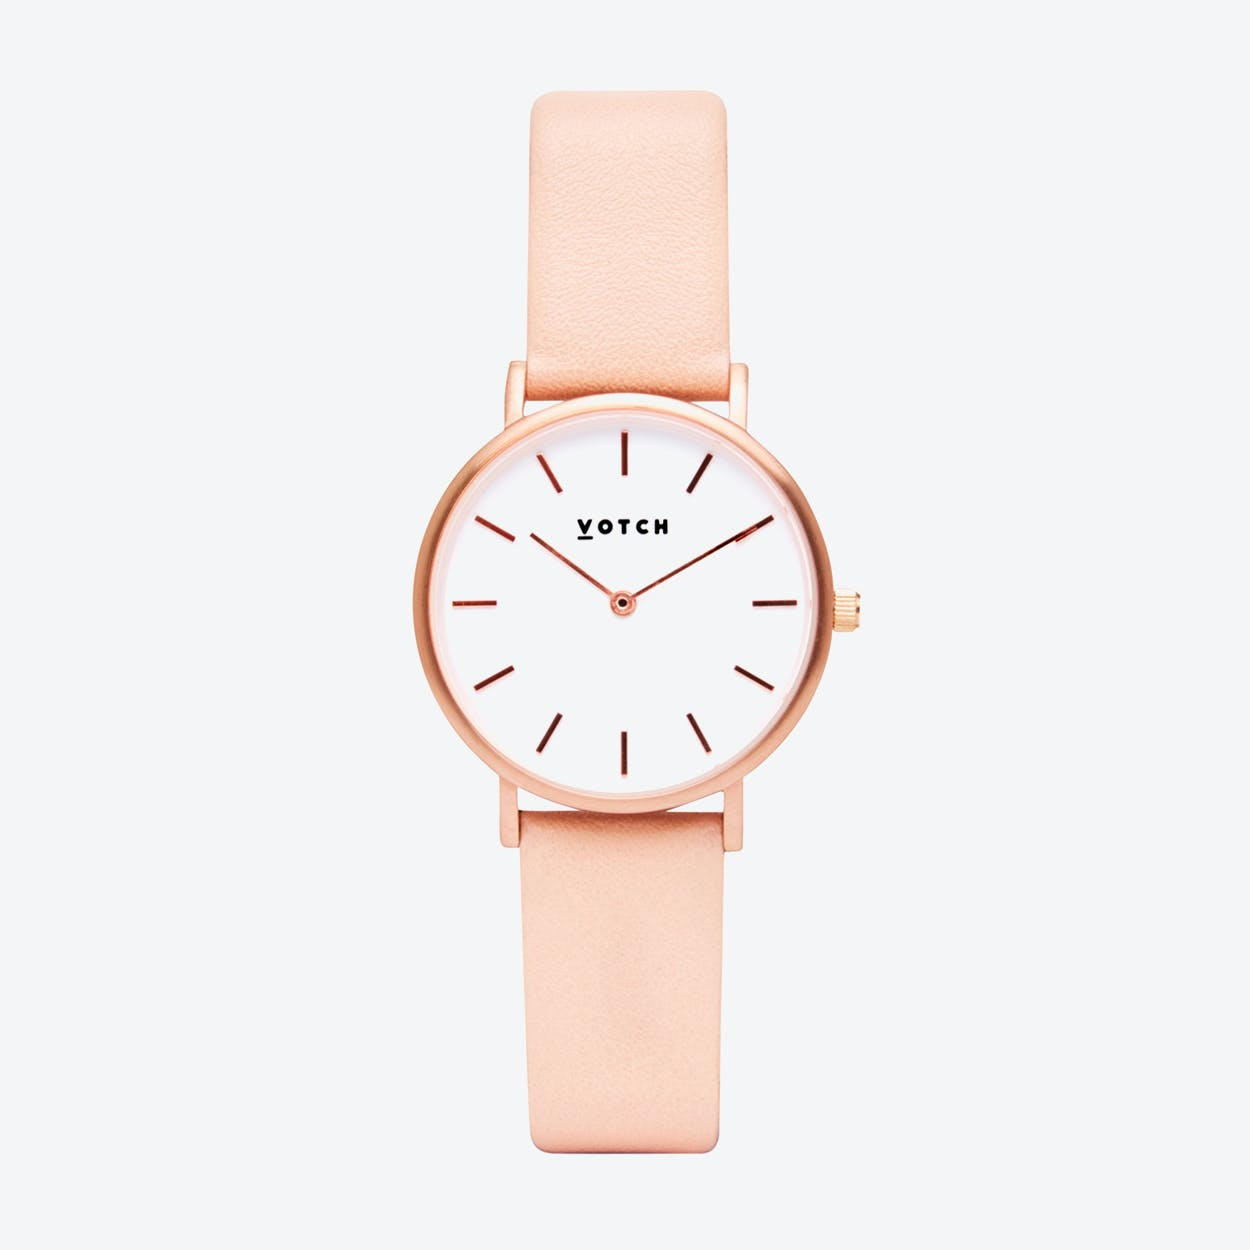 Classic Petite Watch in Rose Gold with White Face and Pink Vegan Leather Strap, 33mm